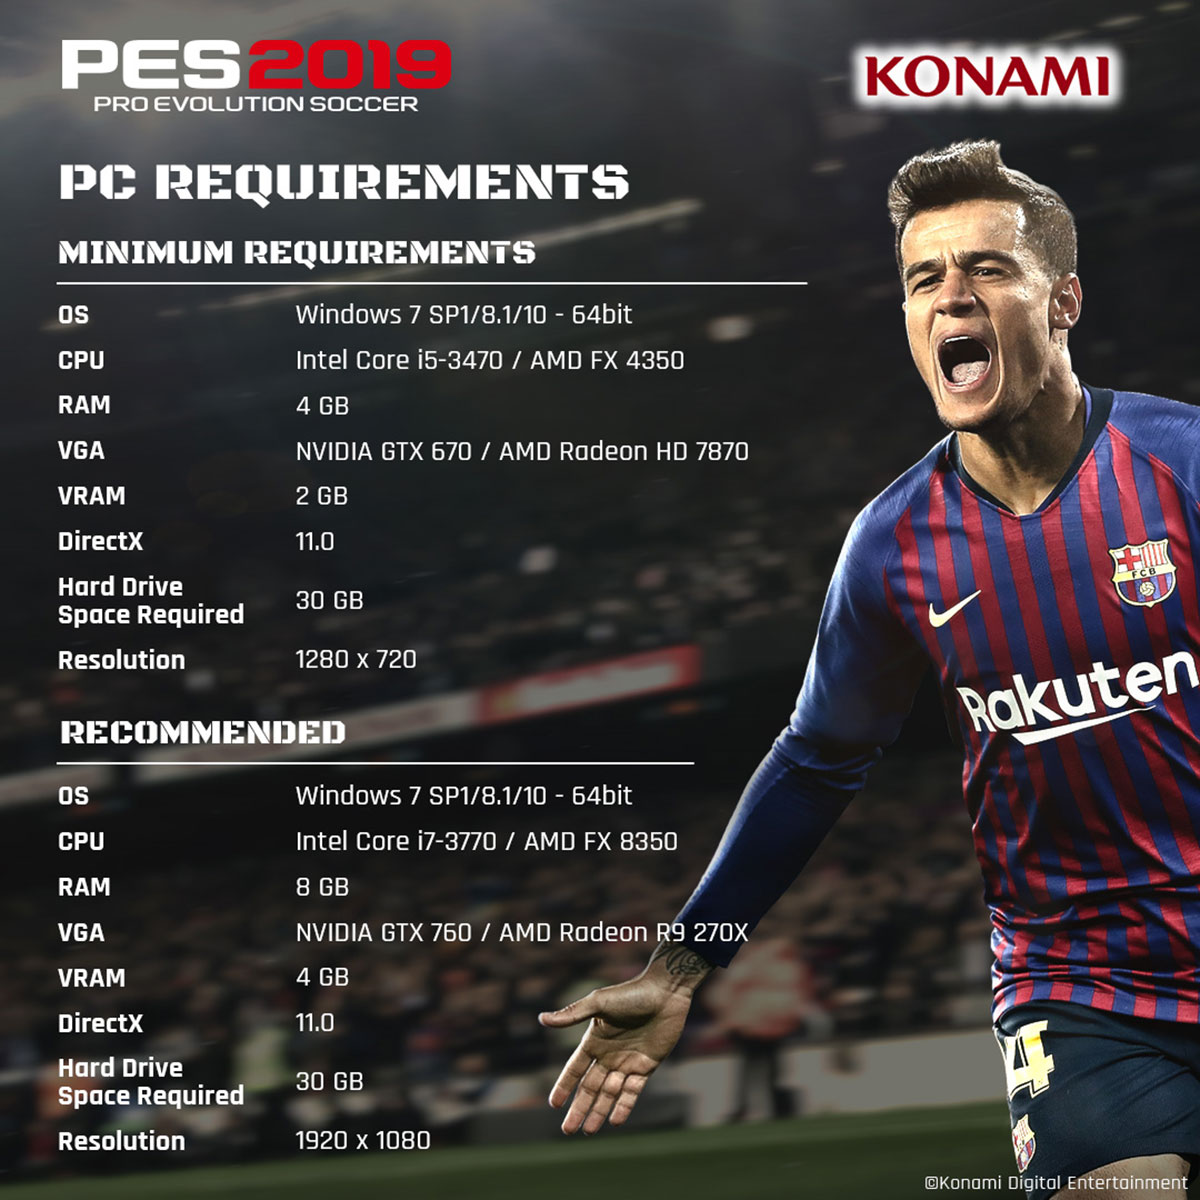 pes2019-pc-requirements.jpg